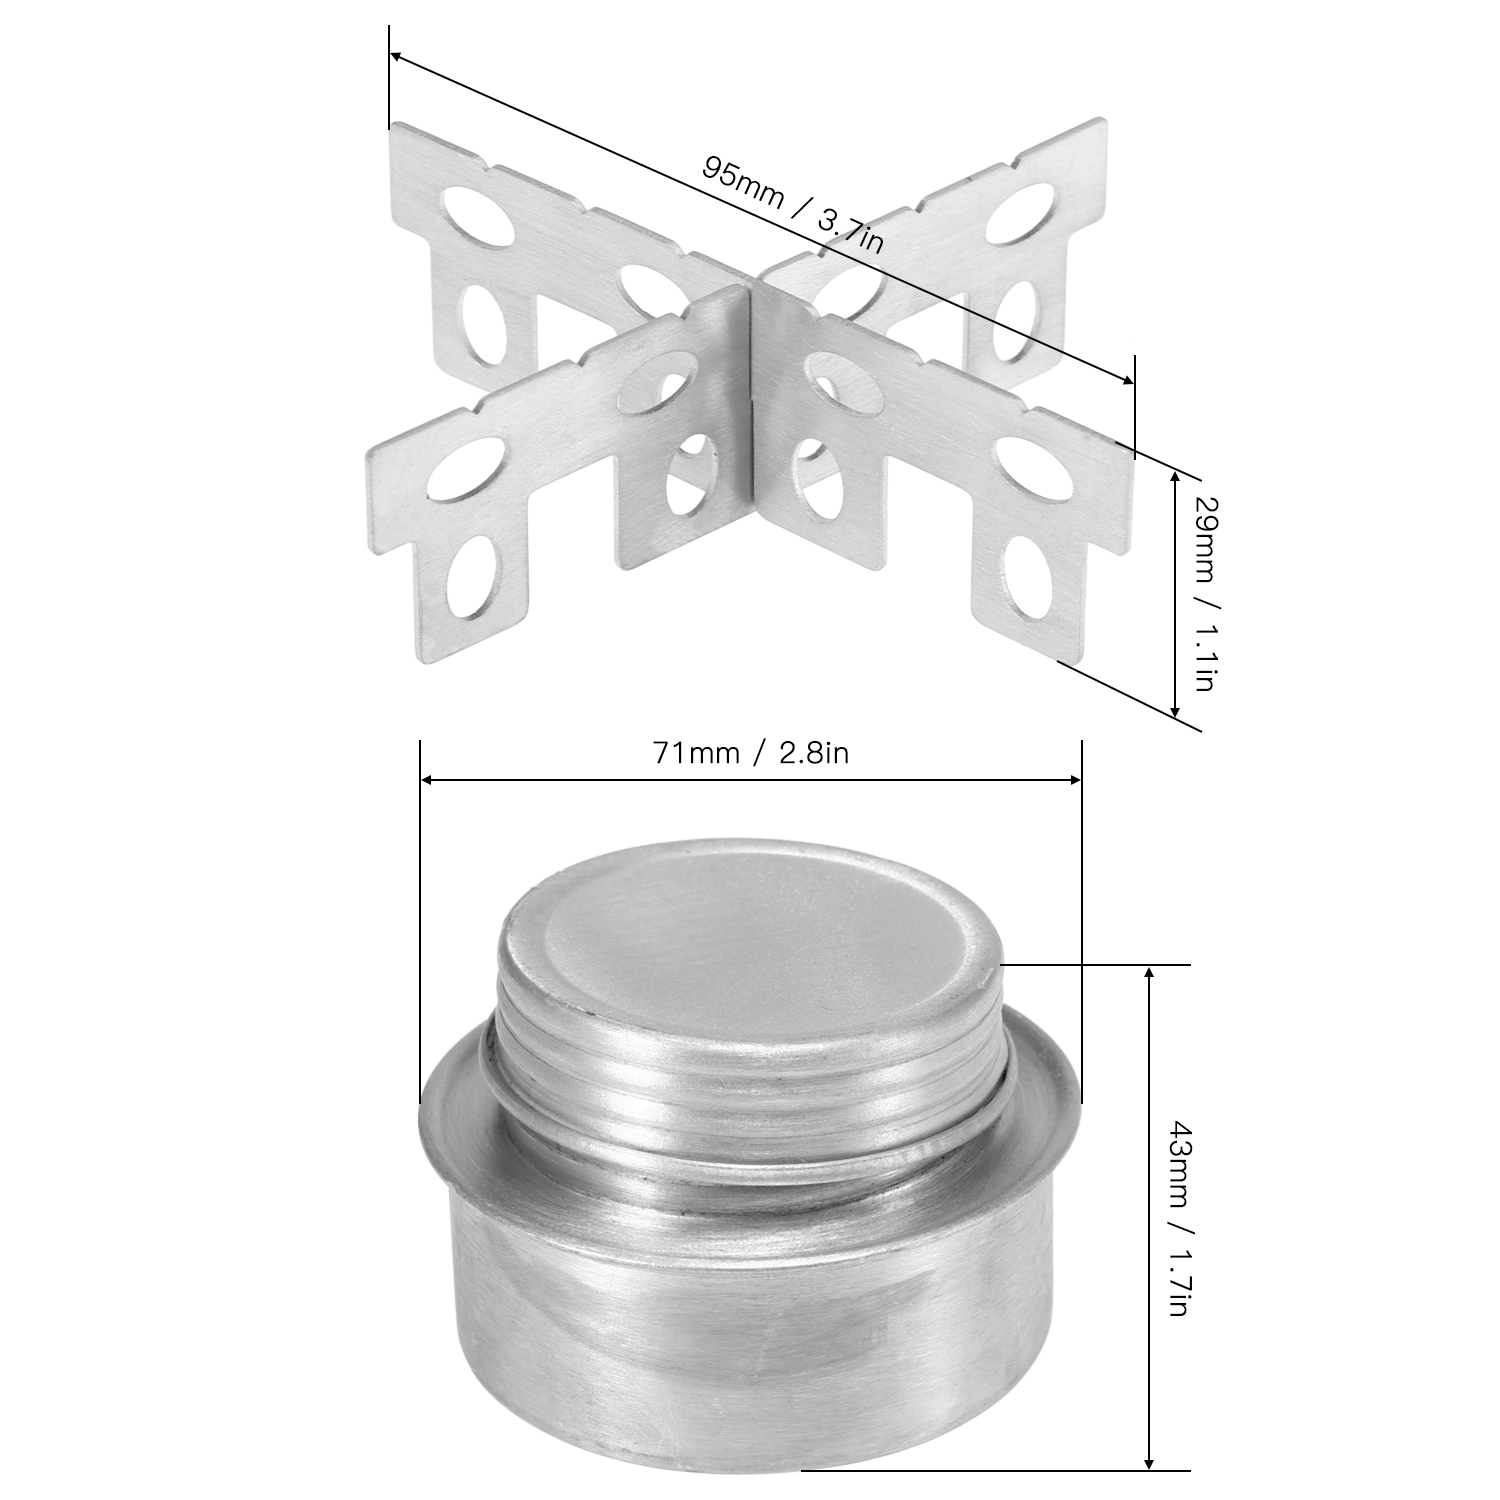 Lixada Outdoor Camping Picnic Aluminum Alloy Mini Alcohol Stove with Cross Stand